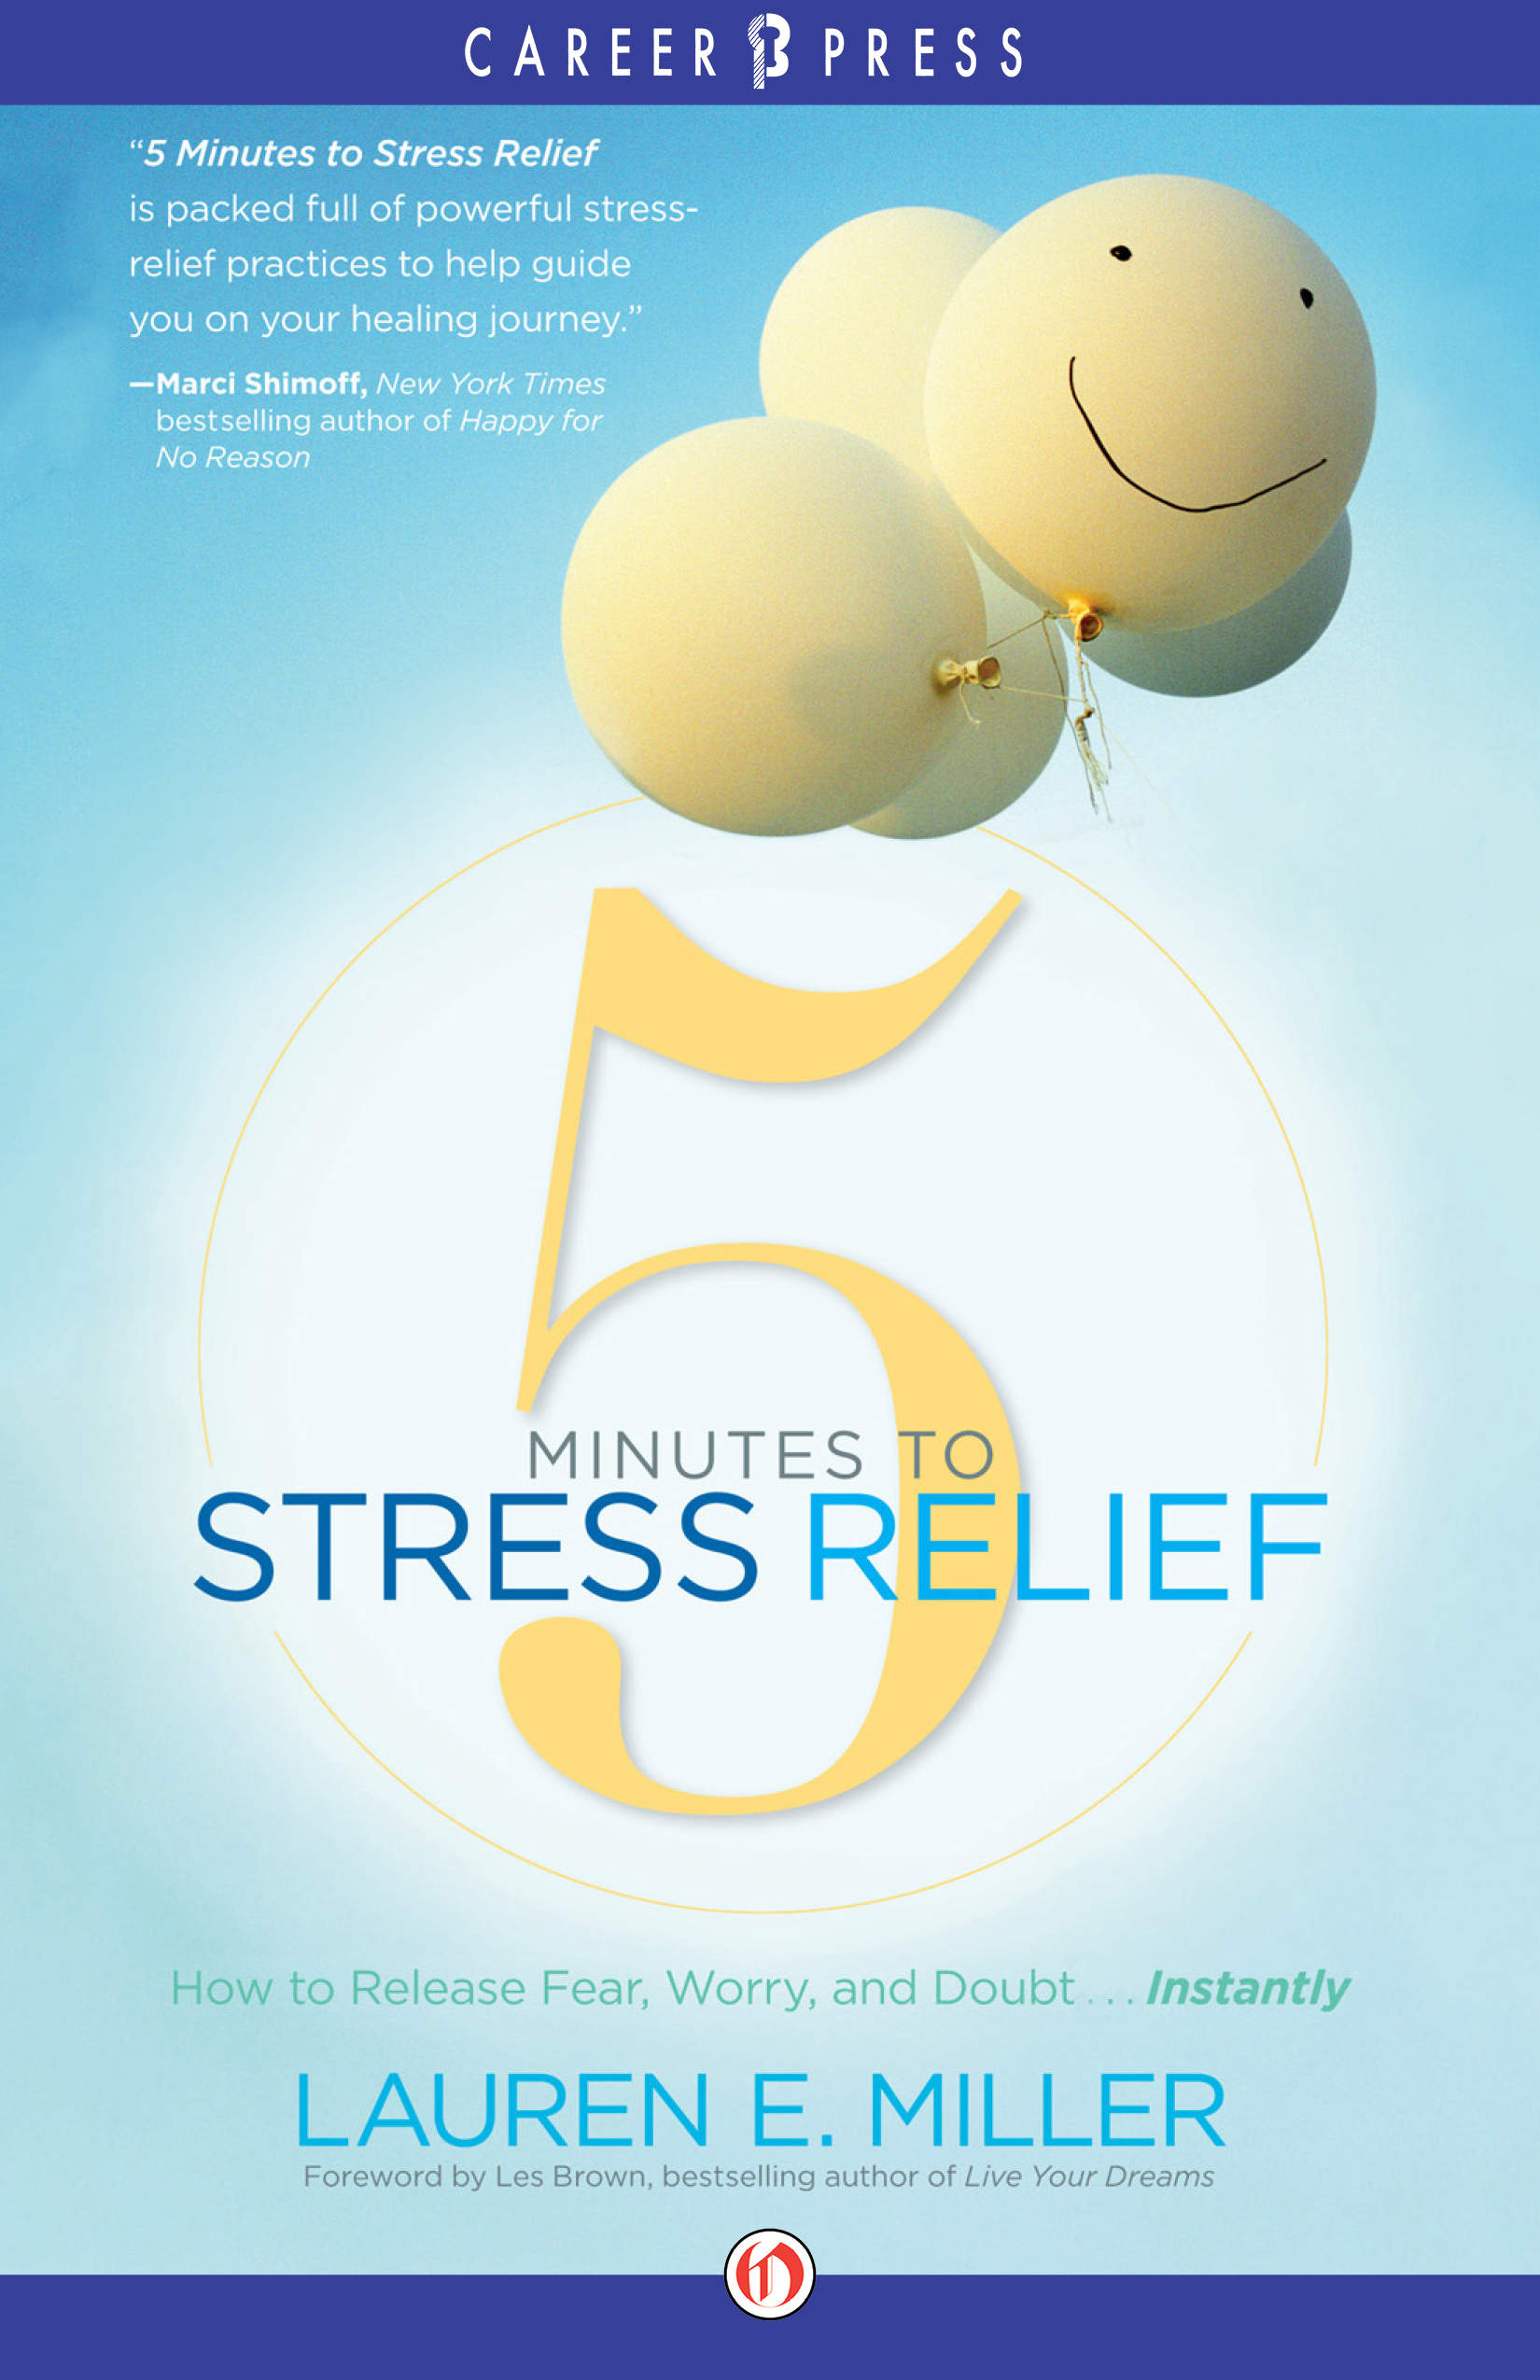 5-Minutes-to-Stress-Relief-How-to-Release-Fear-Worry-and-Doubt-Instantly